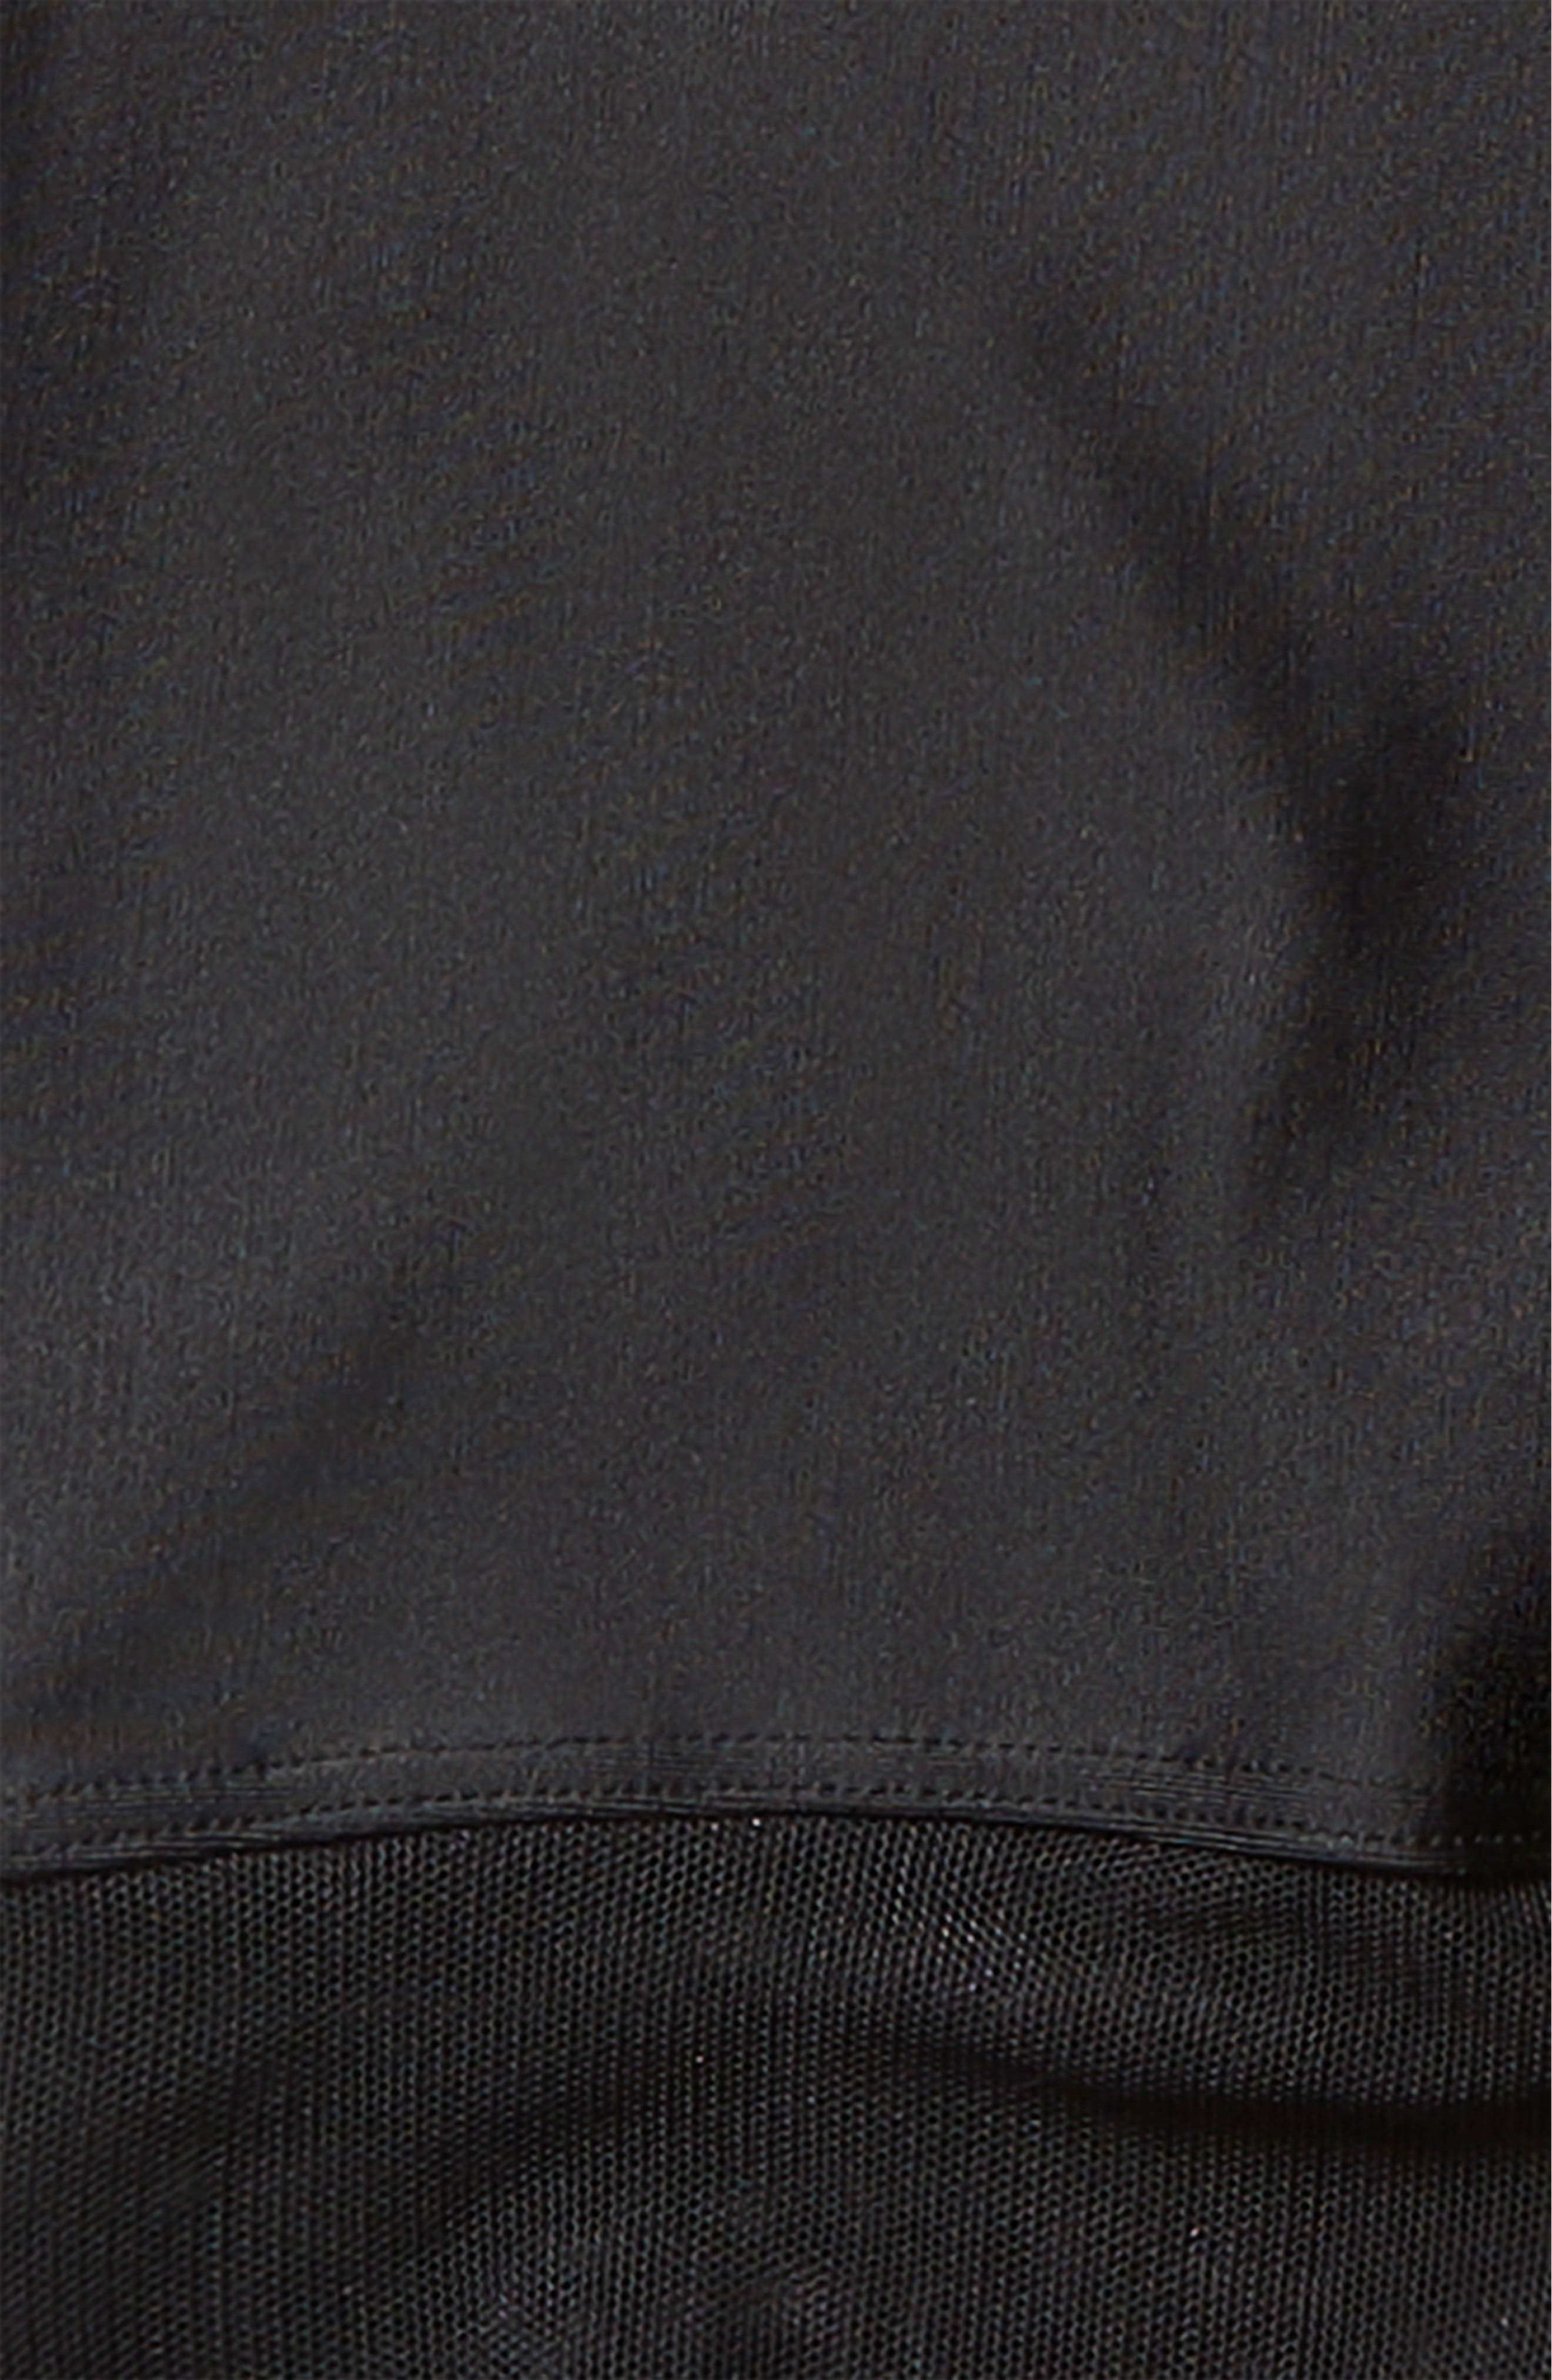 x Dianne Garcia Bike Shorts,                             Alternate thumbnail 7, color,                             001